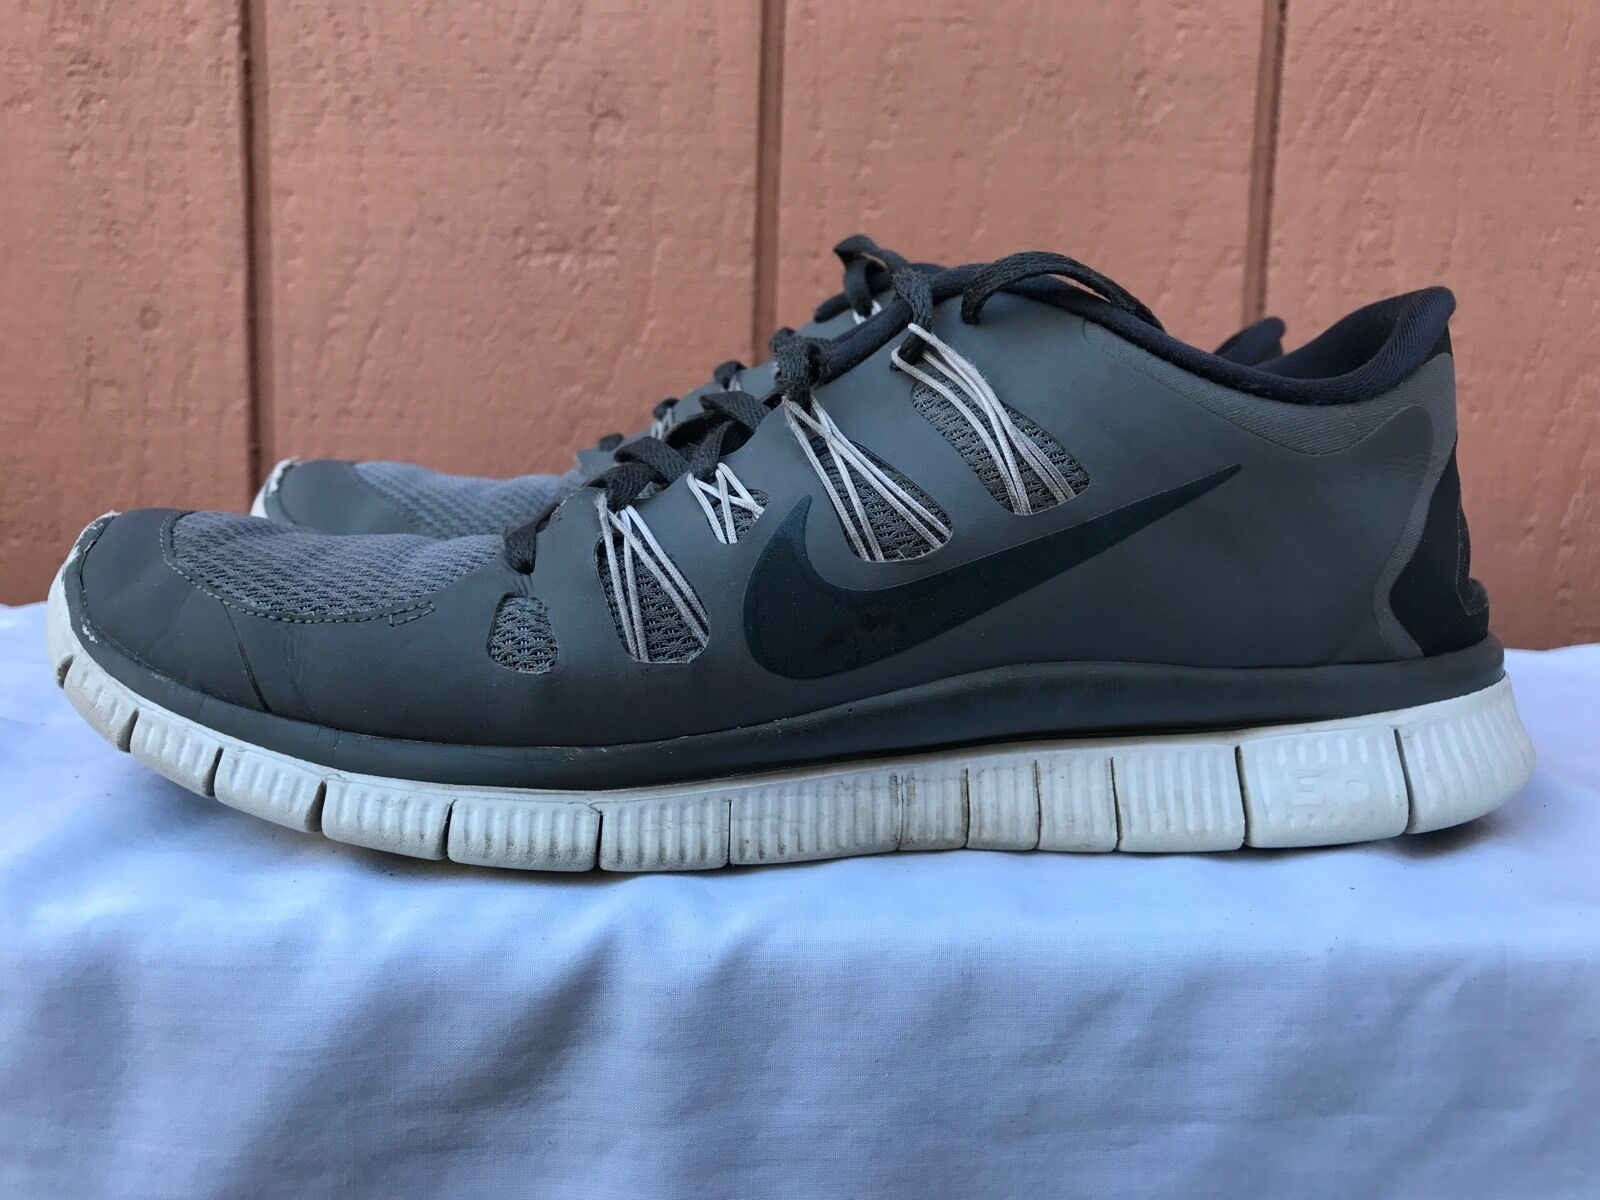 Mens NIKE FREE 5.0+ Grey Athletic Shoes 579959 001 Classic Running Trainers Great discount